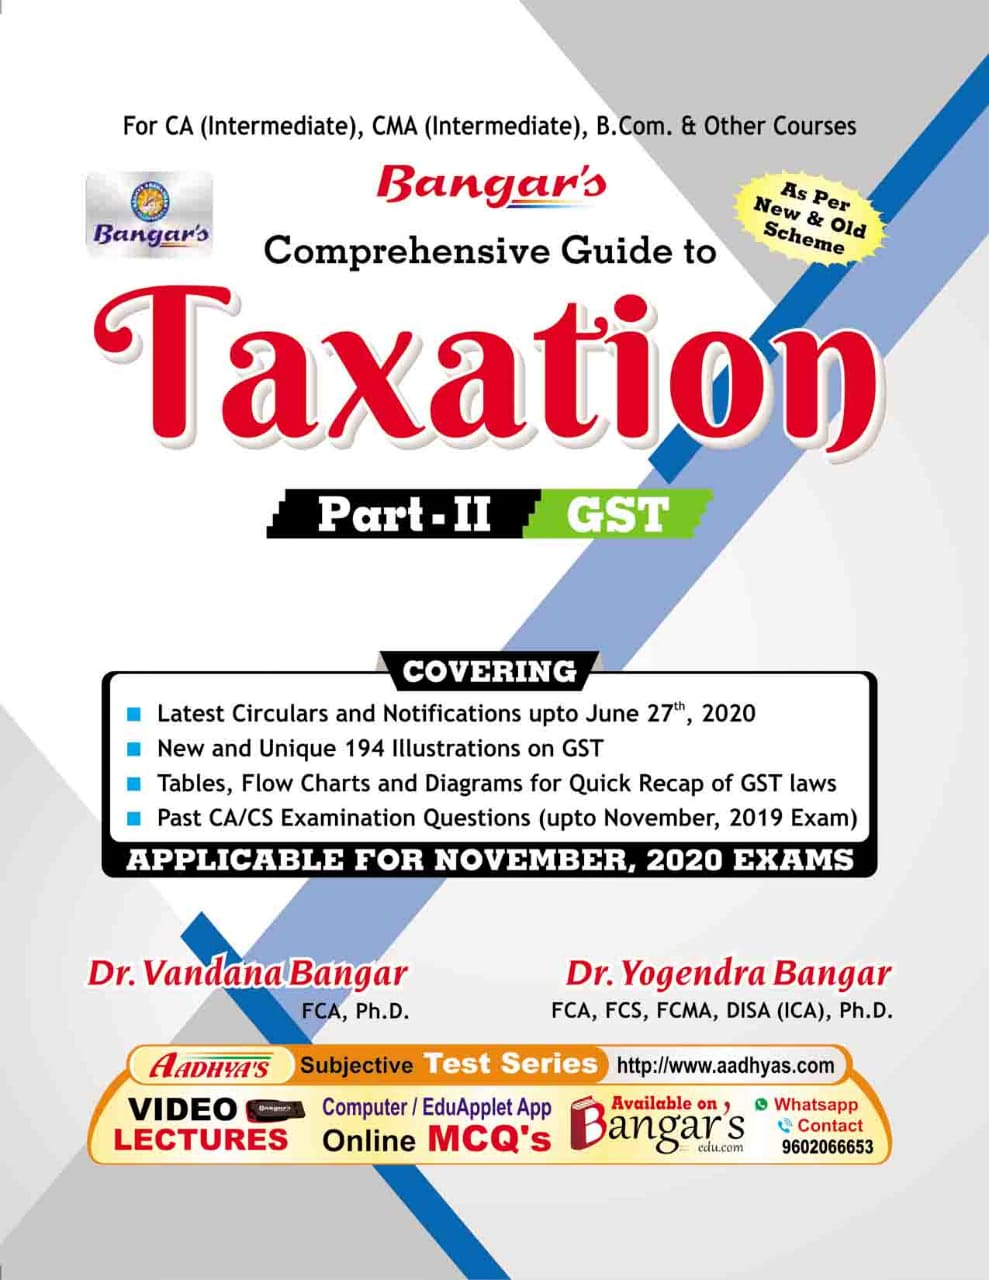 Bangar's Comprehensive Guide to Taxation Part-II Indirect Taxes by Dr. Vandana Bangar and Dr. Yogendra Bangar (Aadhya Prakashan Publishing) for Nov 2020 Exam